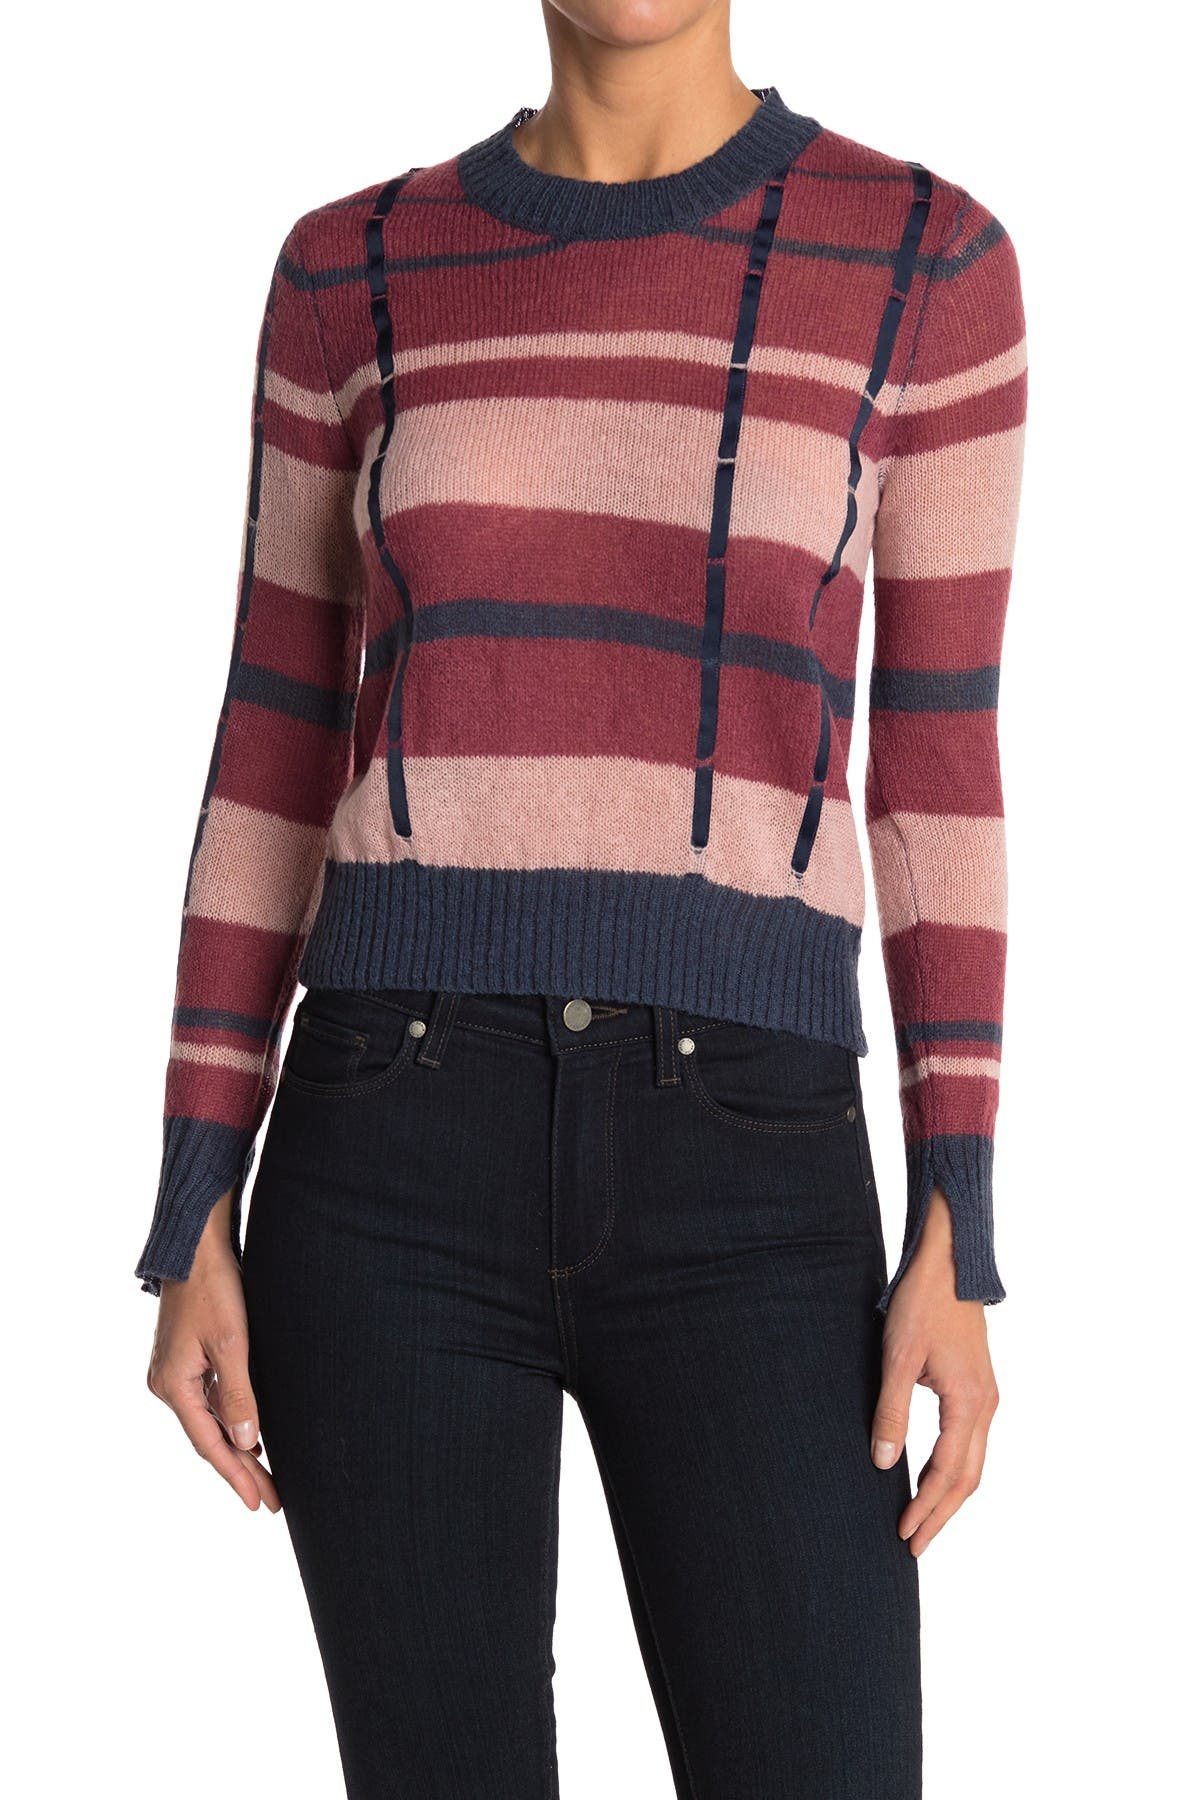 Image of Ella Moss Denise Check Knit Sweater